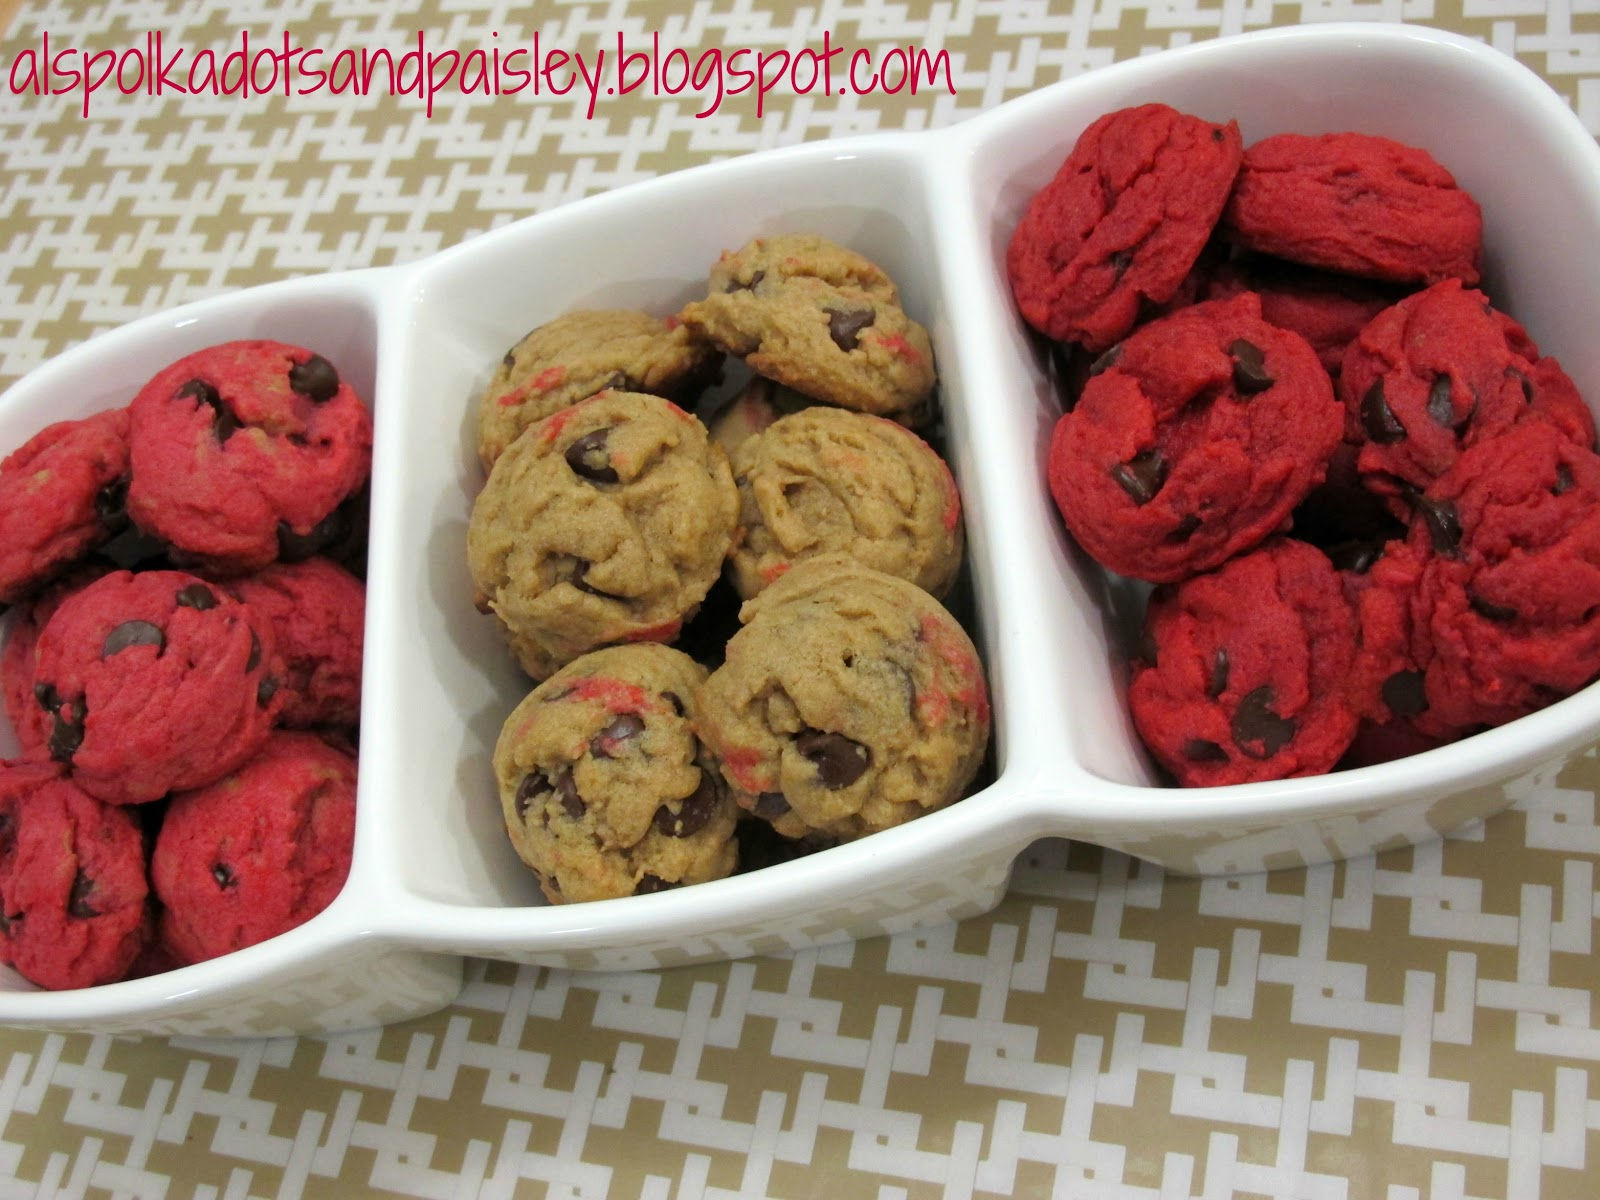 To add the colouring, weseparated the cookies into three bowls. We ...